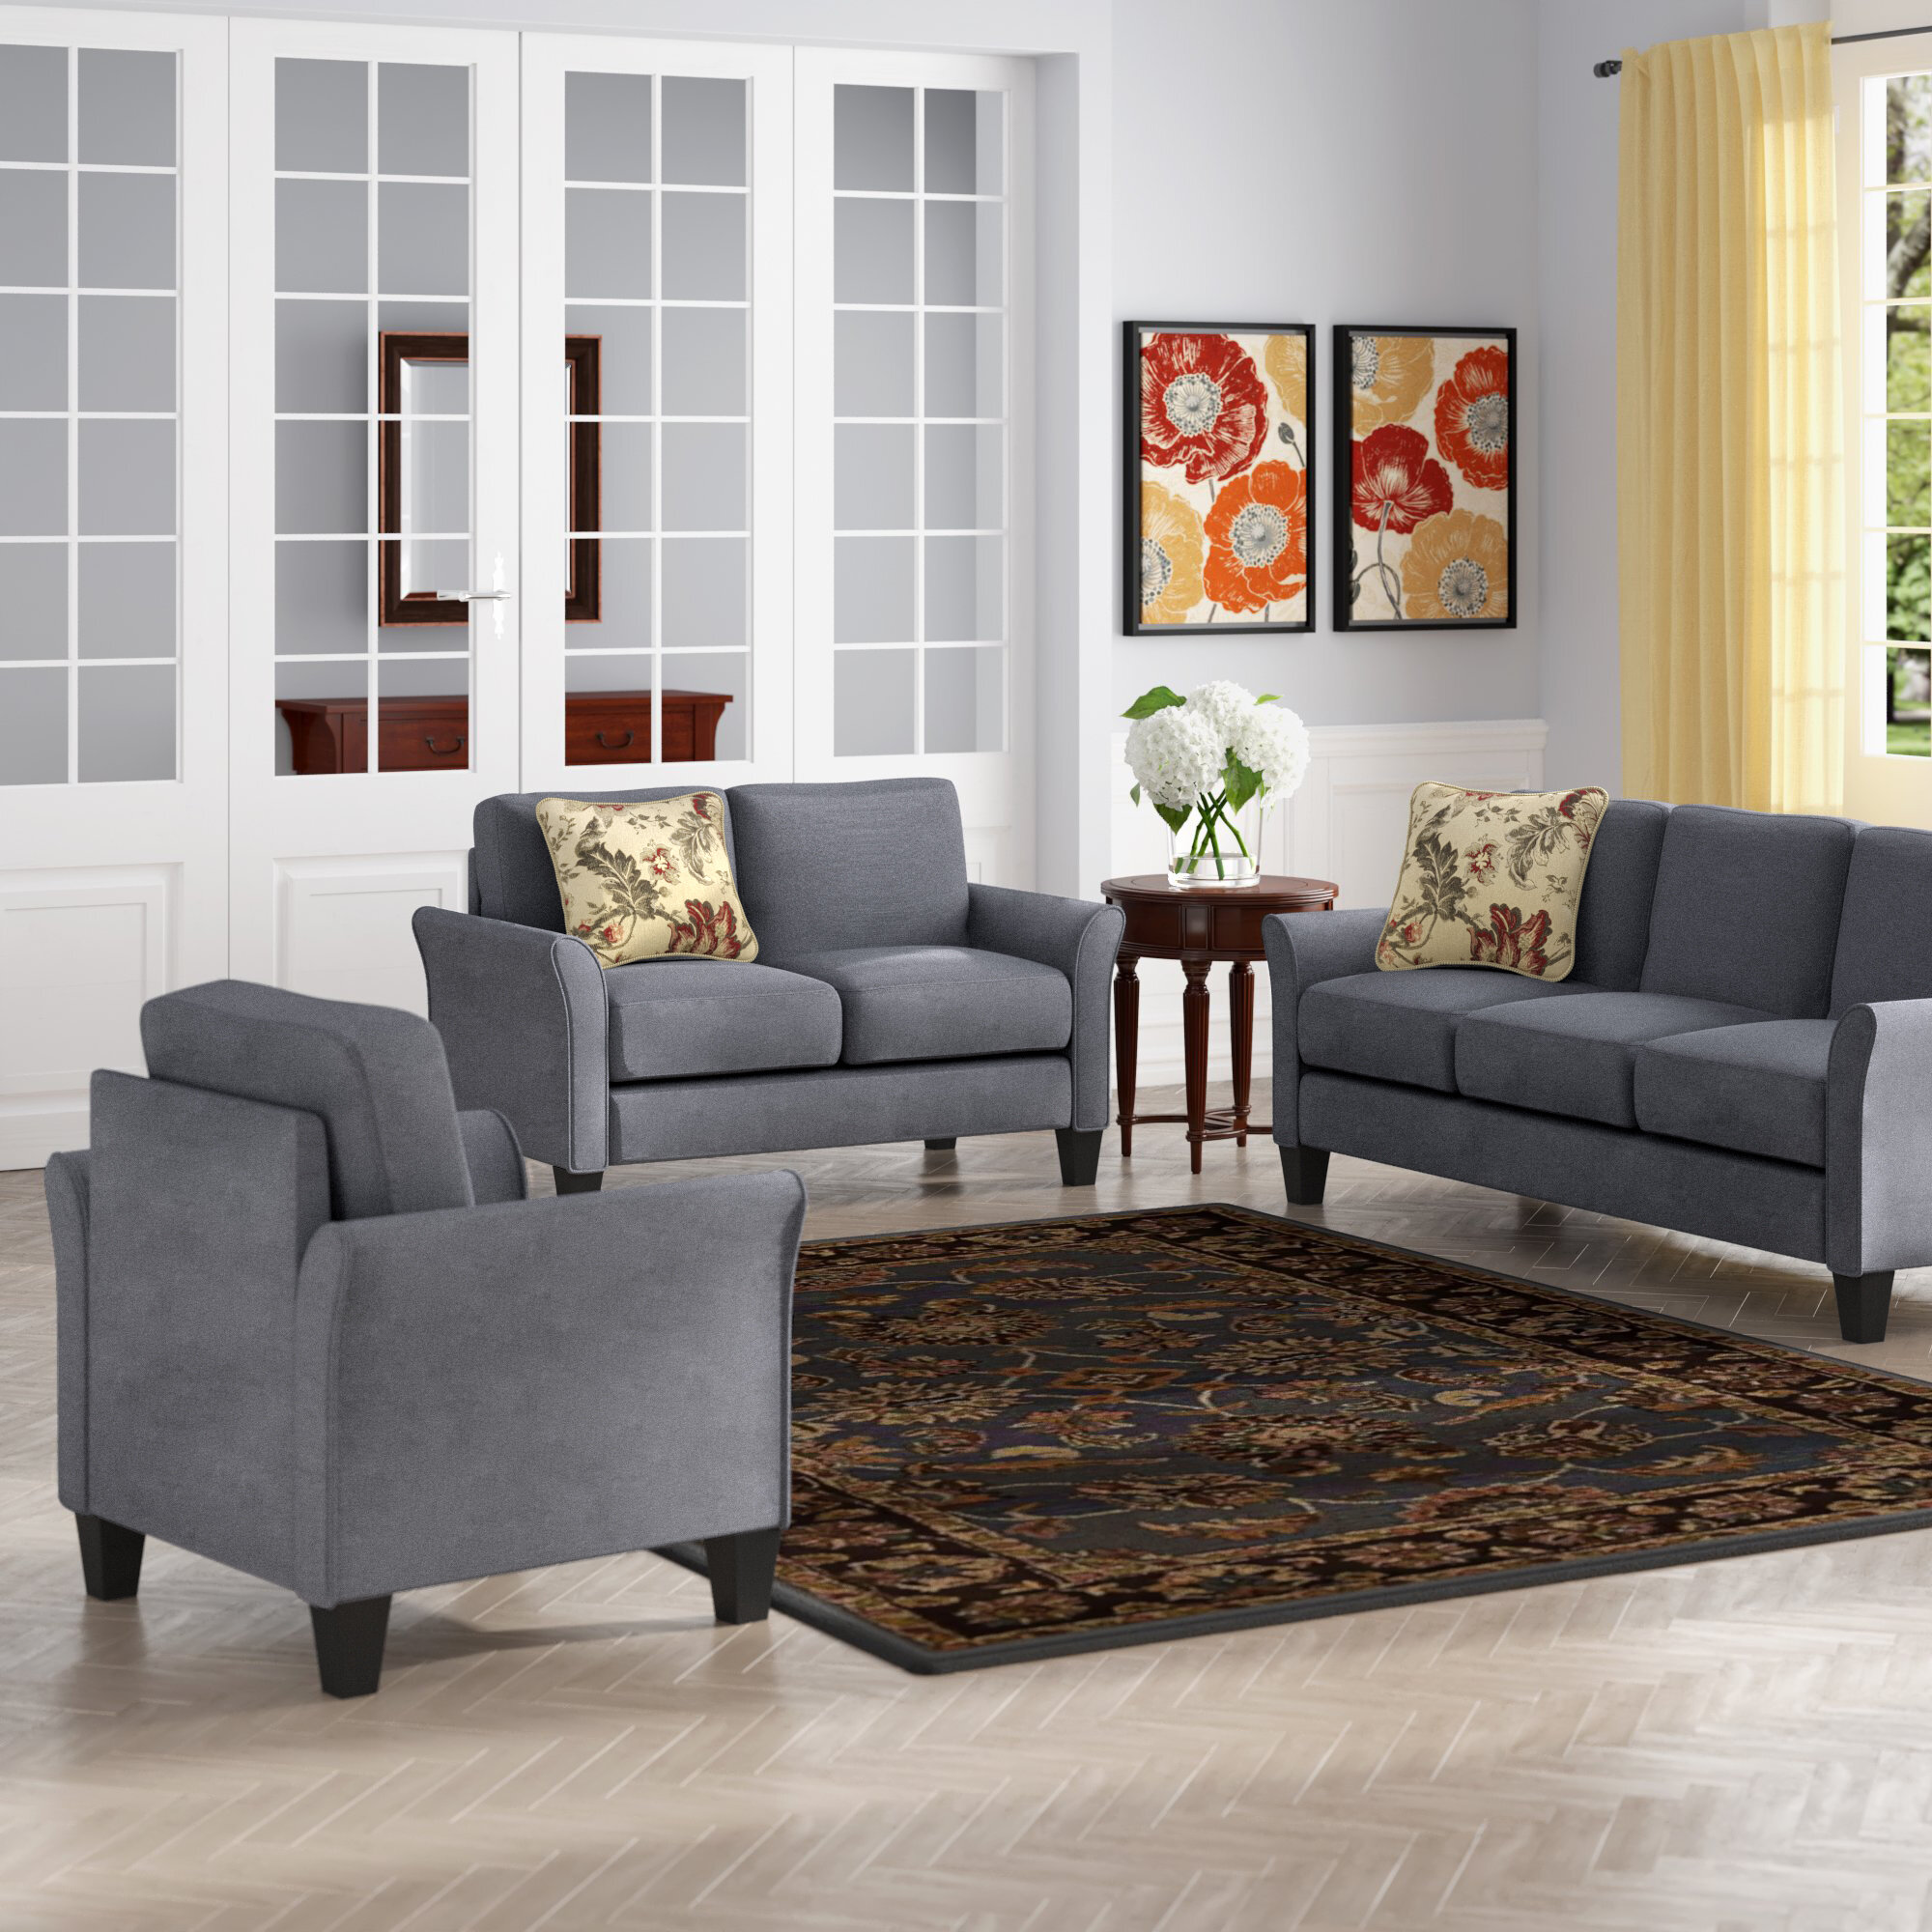 Goldnilla 3 Piece Living Room Set